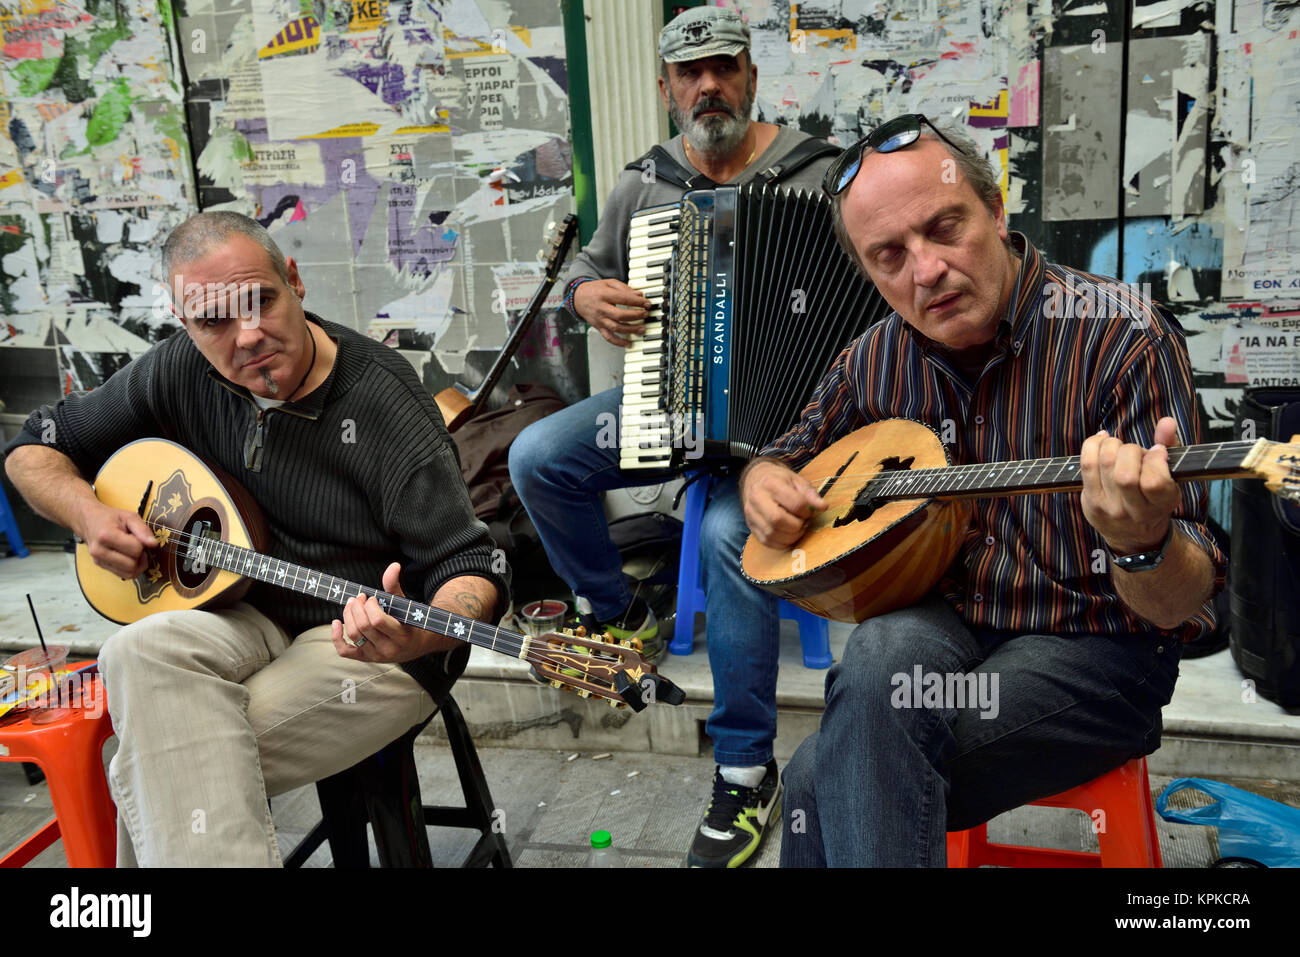 Group of three musician buskers playing traditional instruments along pavement in central Athens, Greece - Stock Image